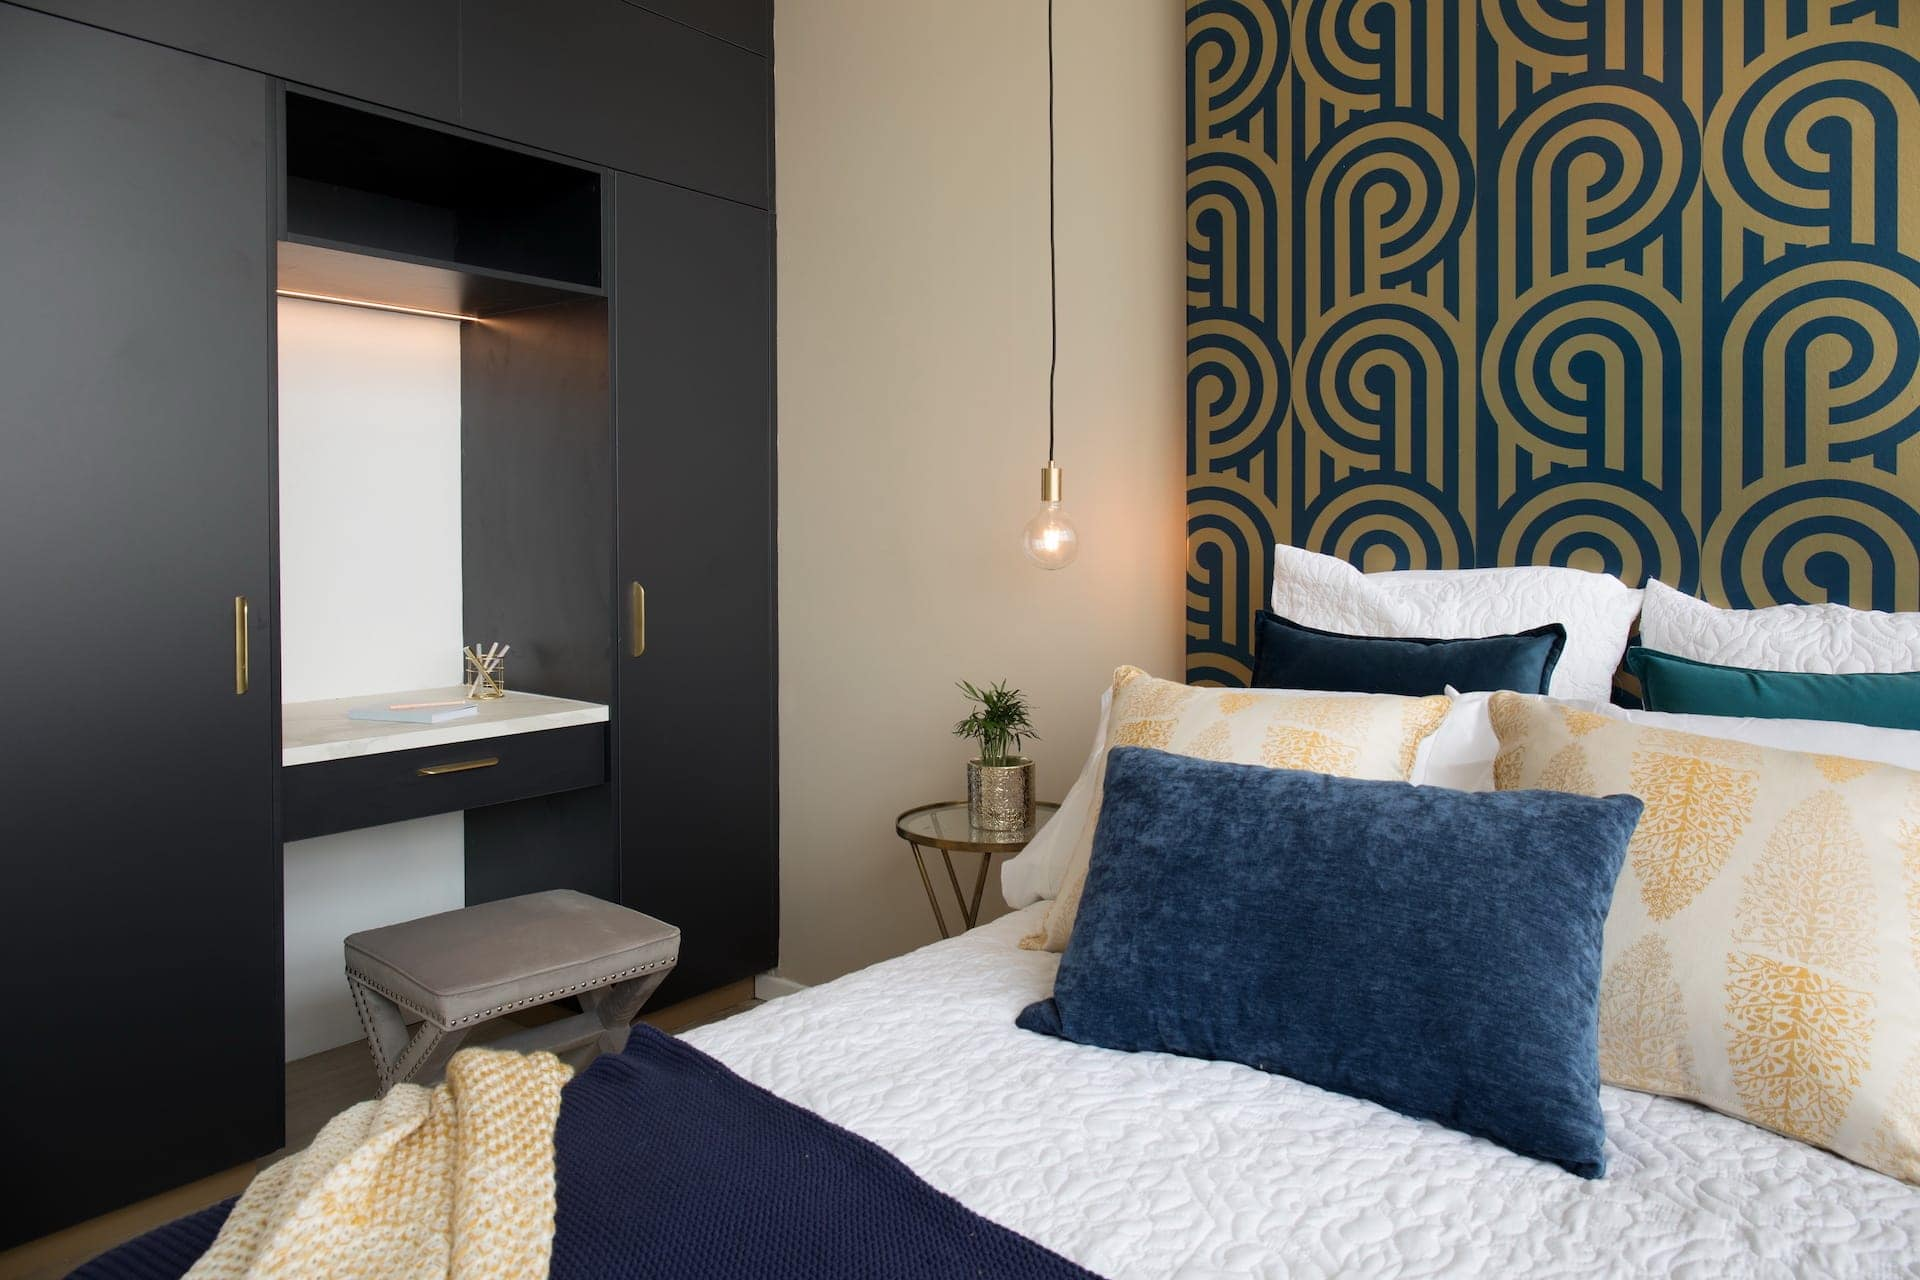 house rules 2020 penthouse reveal bedroom with wallpaper headboard and desk